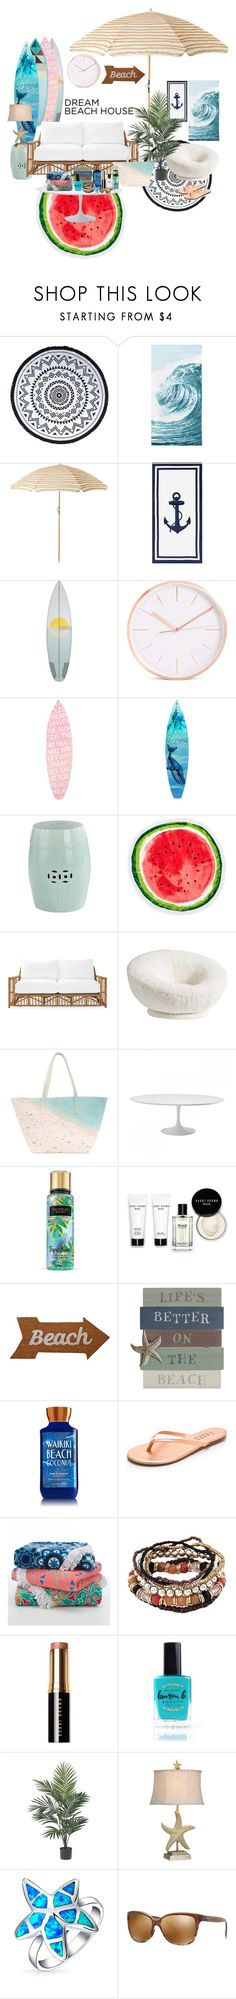 """Beach"" by u8278 ❤ liked on Polyvore featuring interior, interiors, interior design, home, home decor, interior decorating, You, Me and the Dream, PBteen, Pottery Barn and Nordstrom Rack"